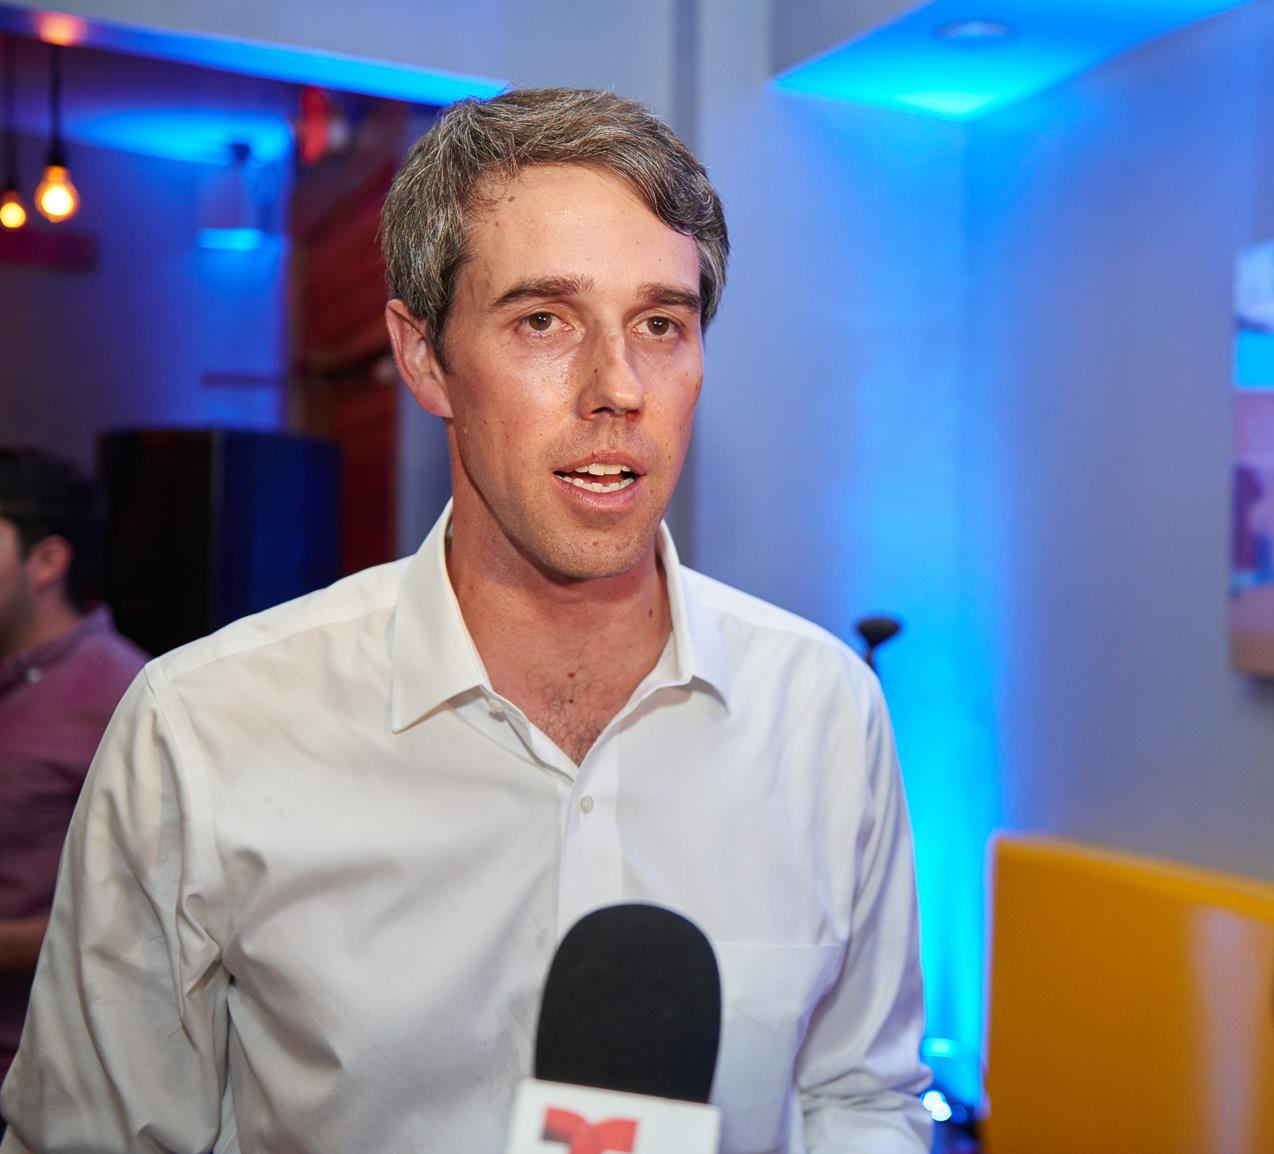 Photo by O'Rourke Campaign